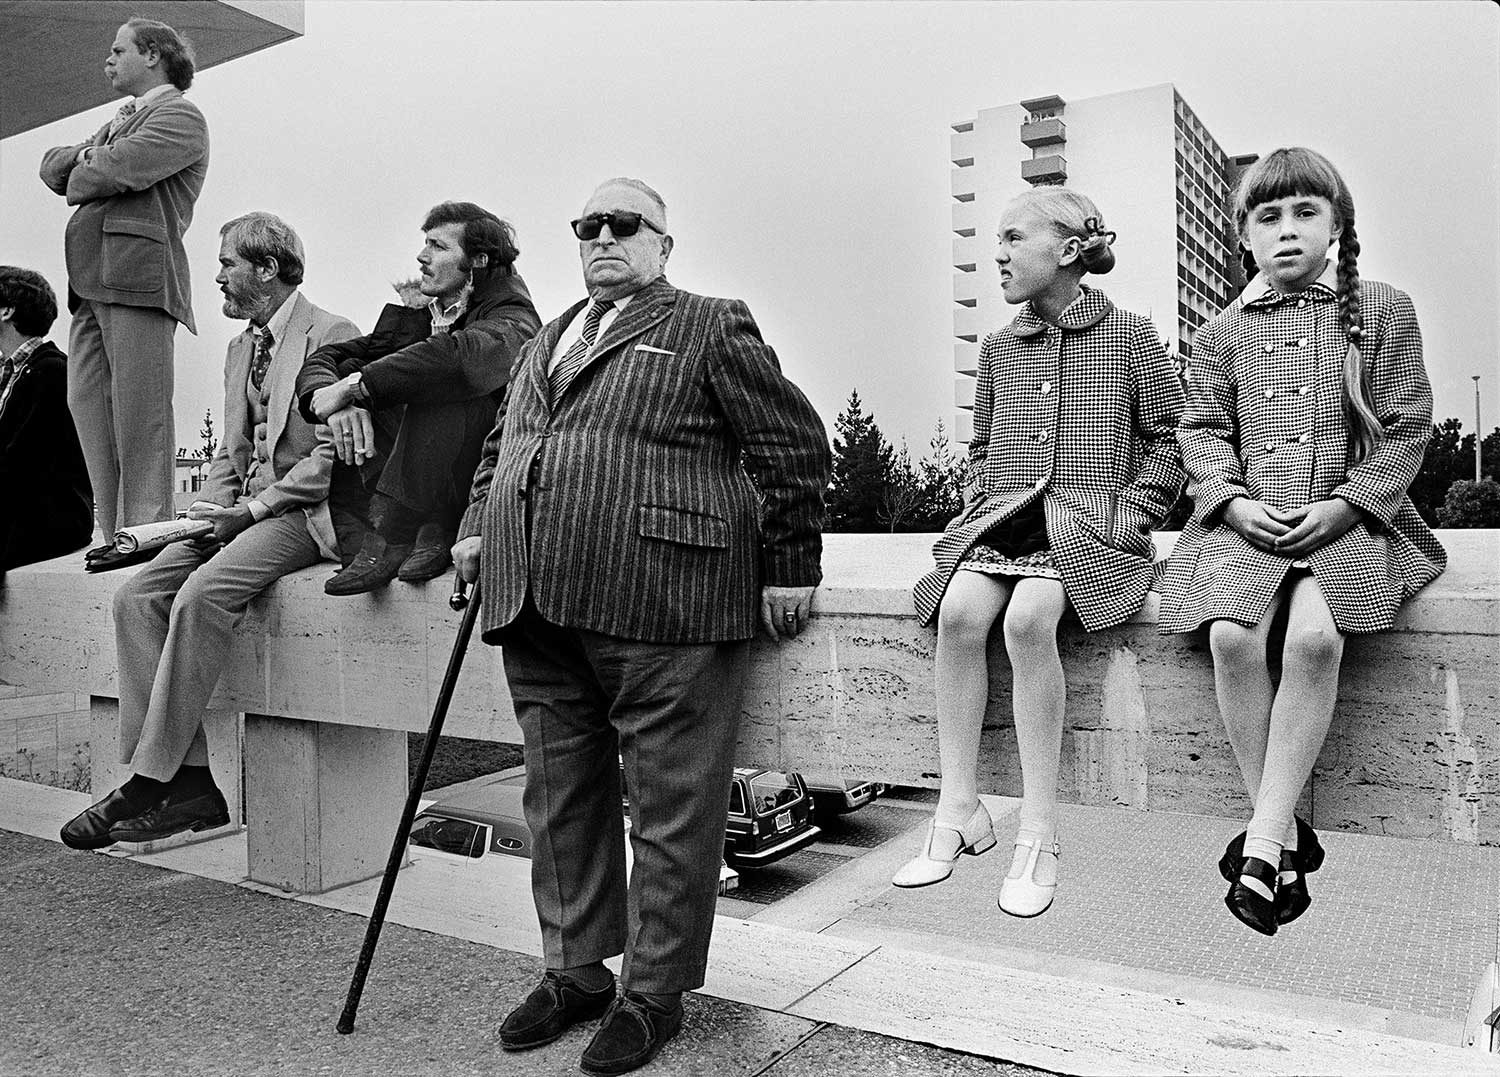 Michael Jang, Onlookers at the George Moscone Funeral, 1978